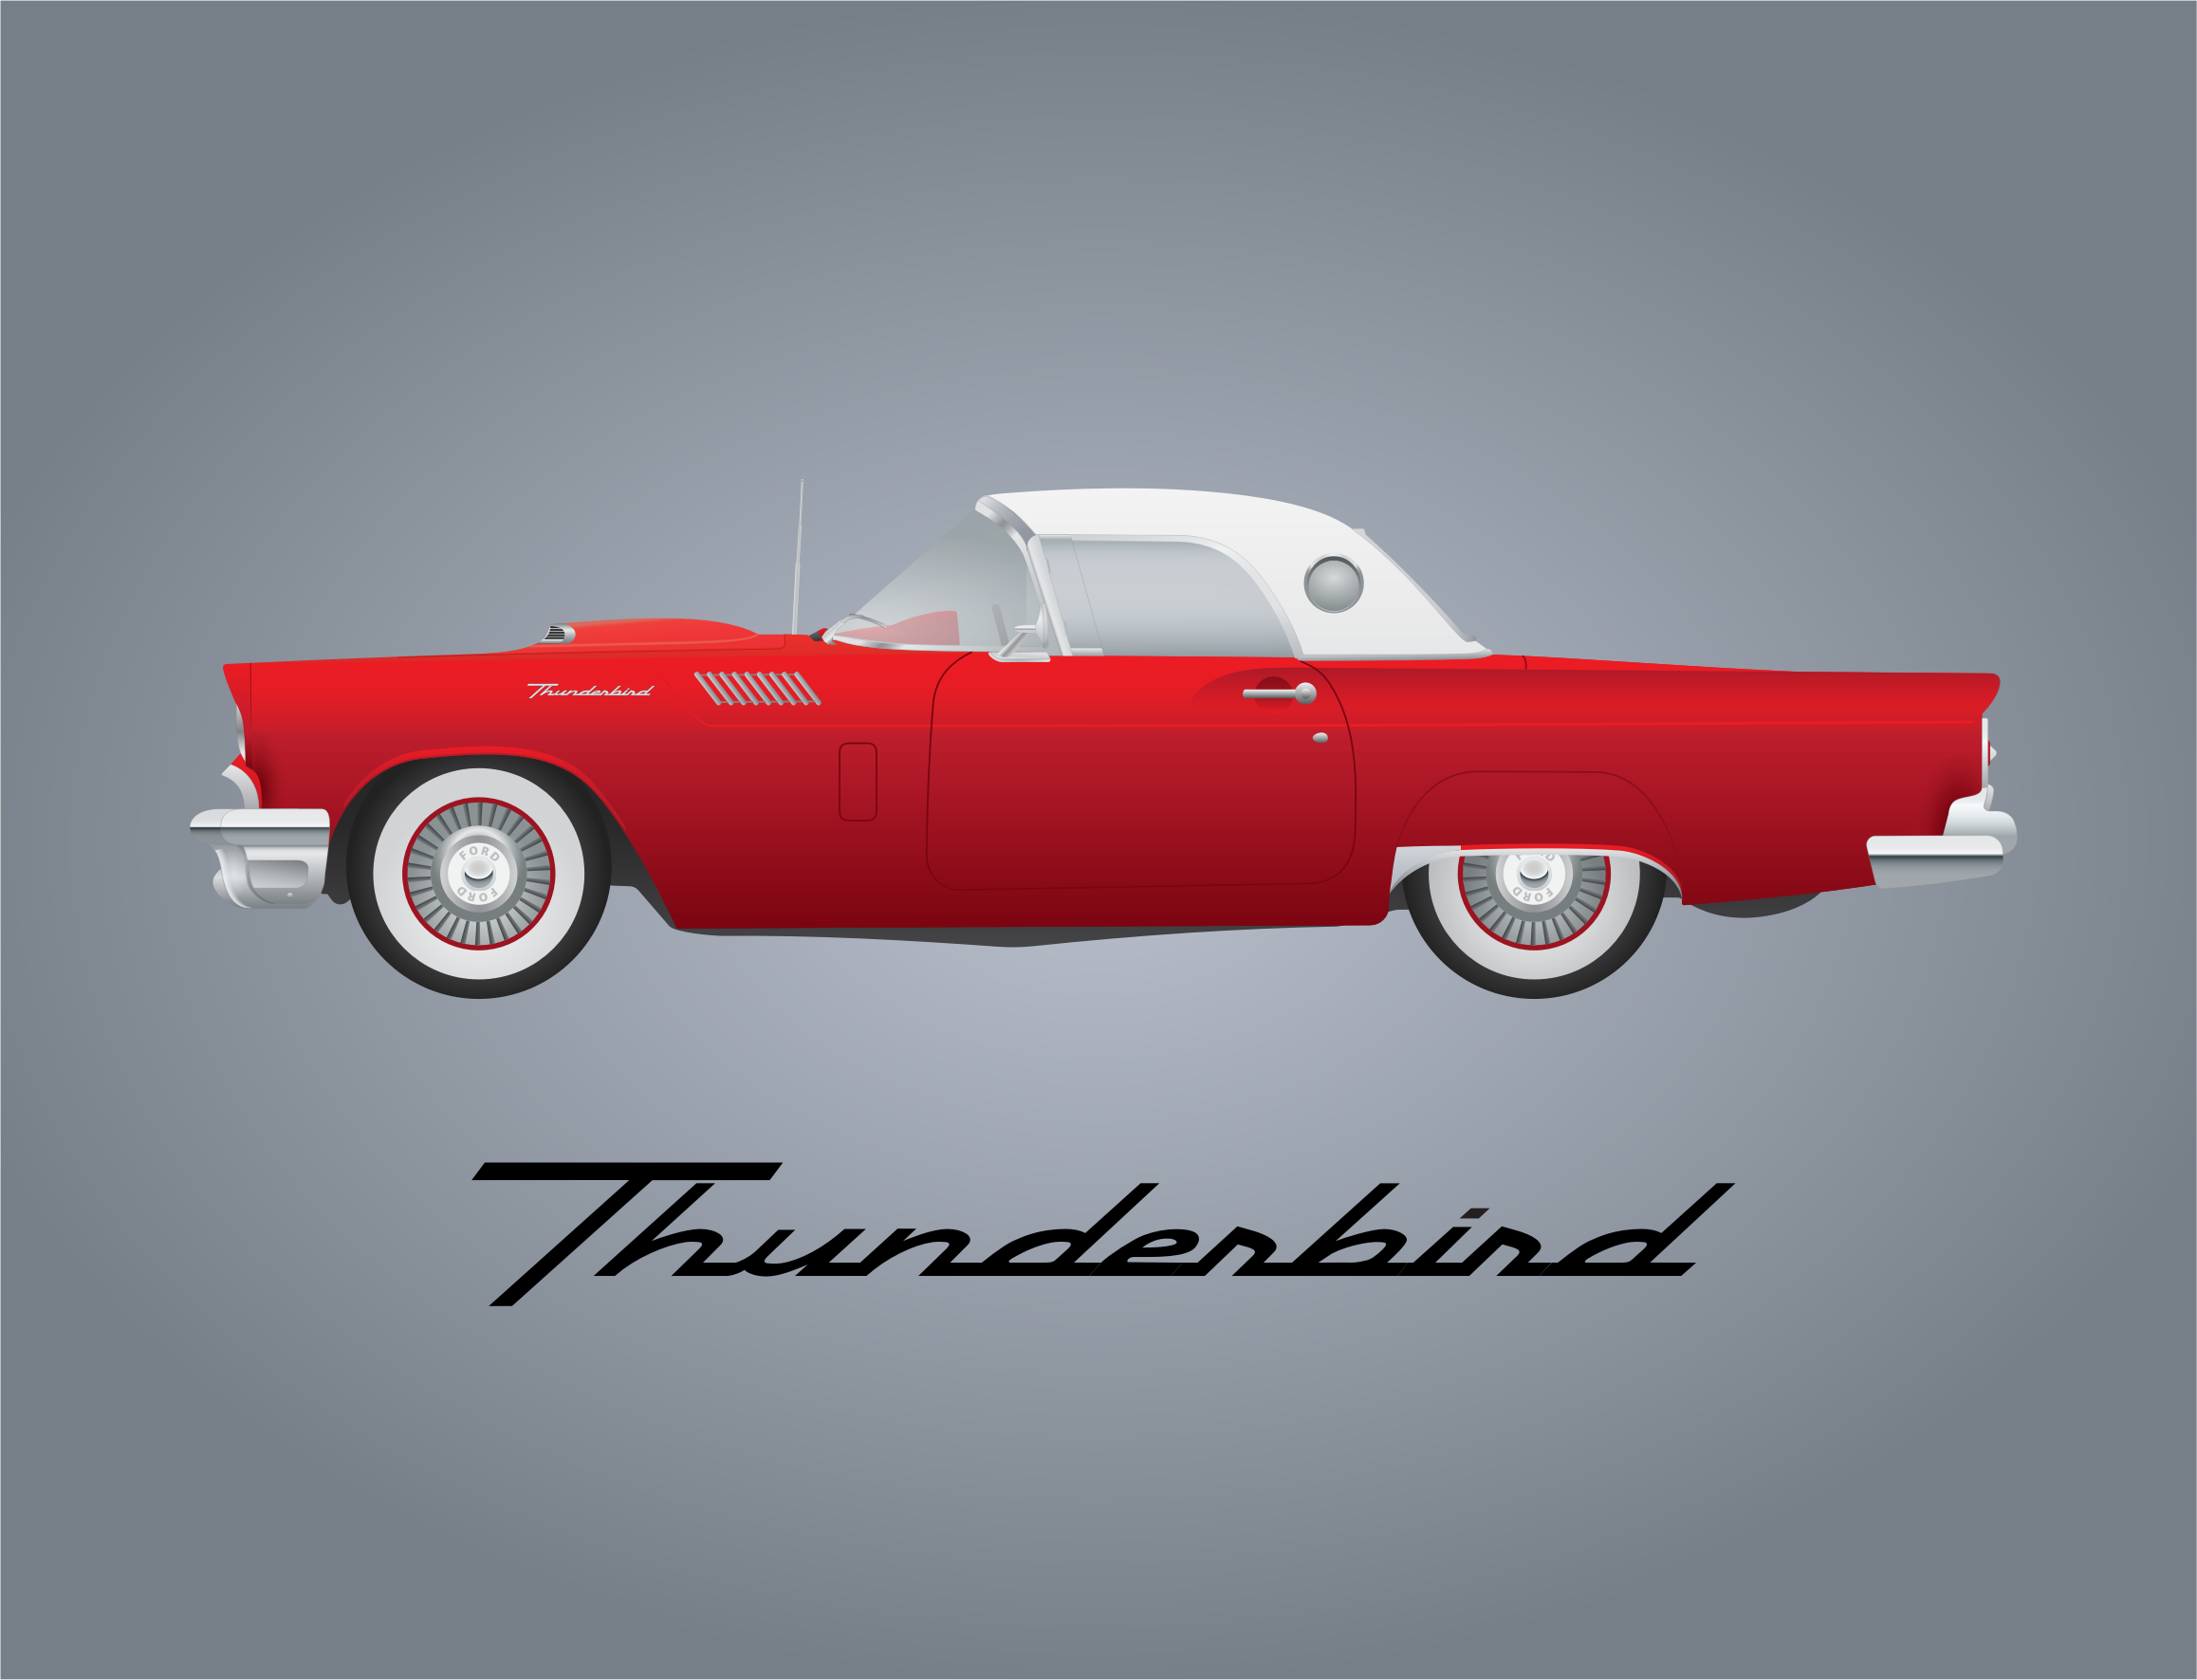 Ford thunderbird clipart images gallery for Free Download.